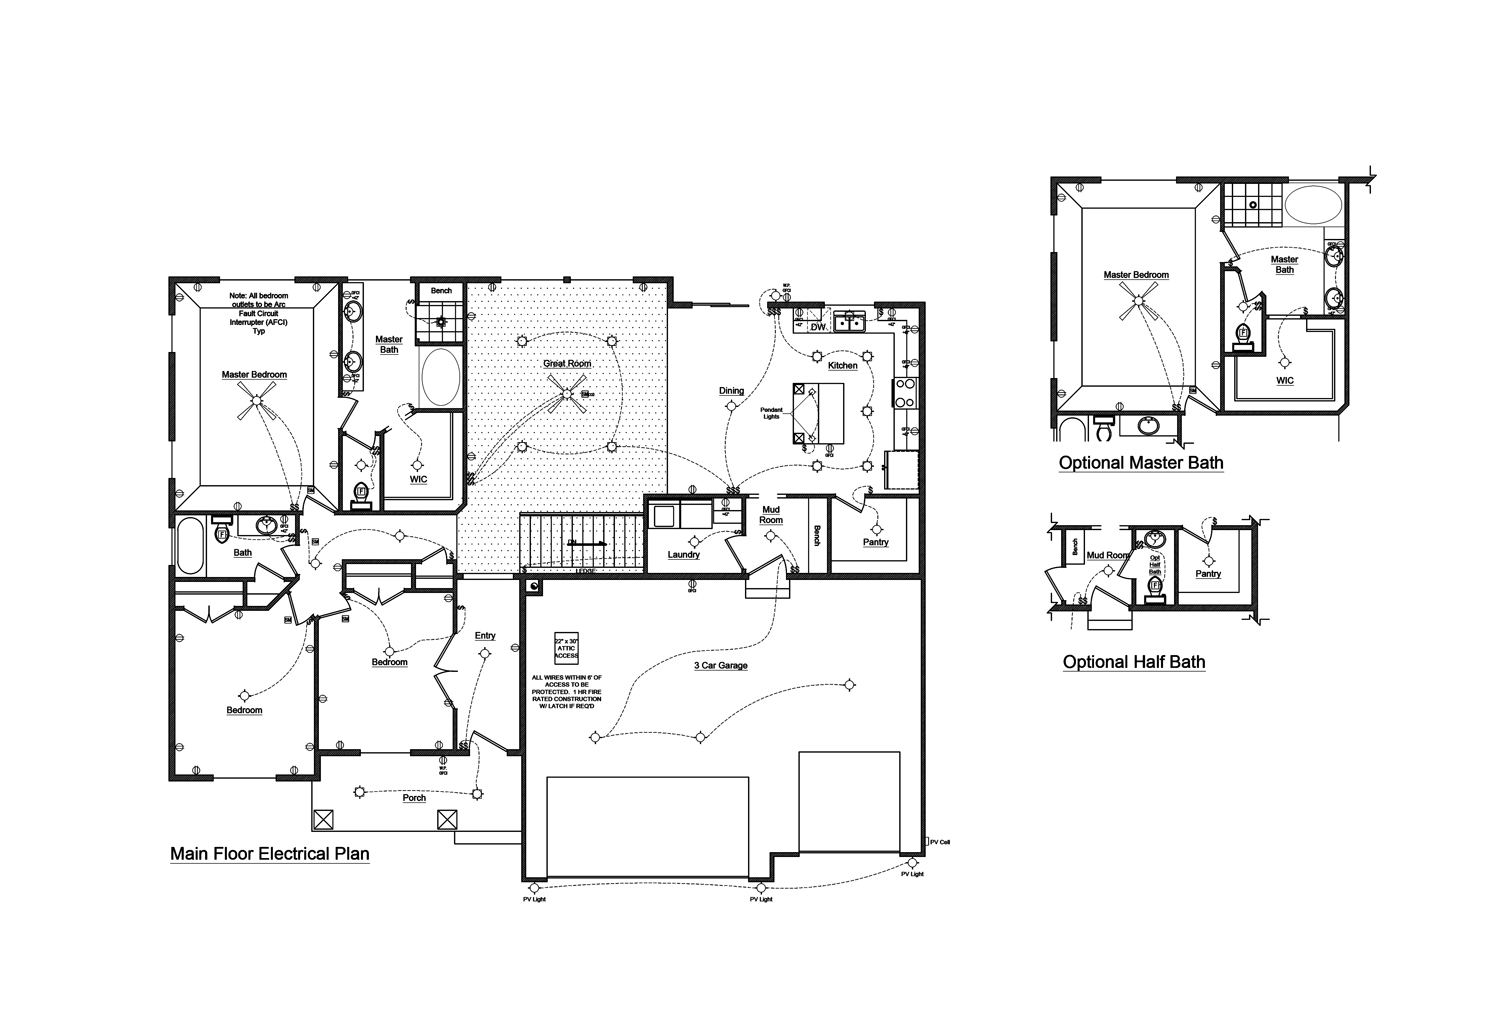 hight resolution of 1 floor plan with electrical layout